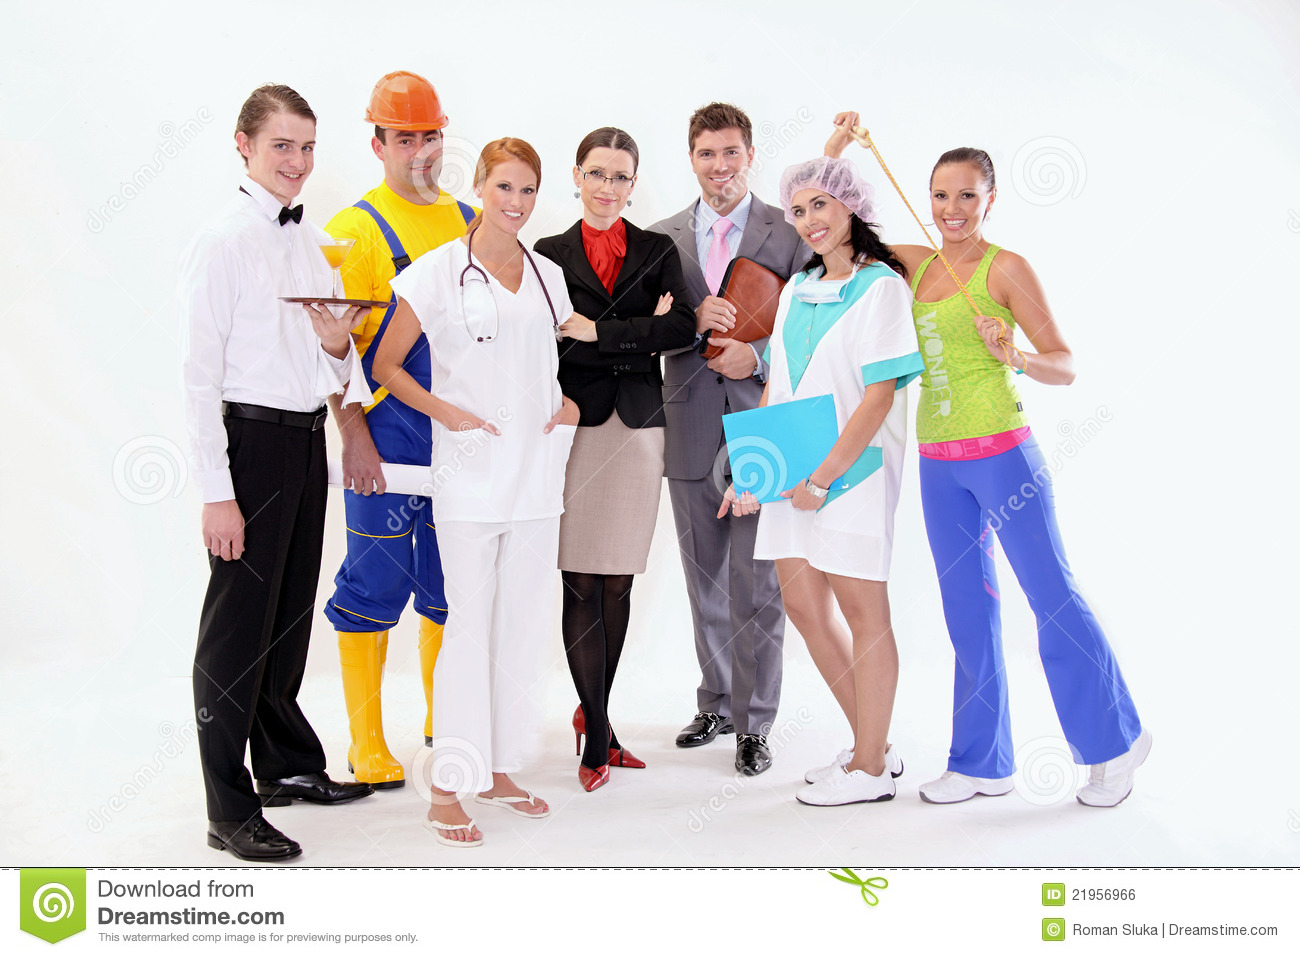 Free Clipart Images Office Workers